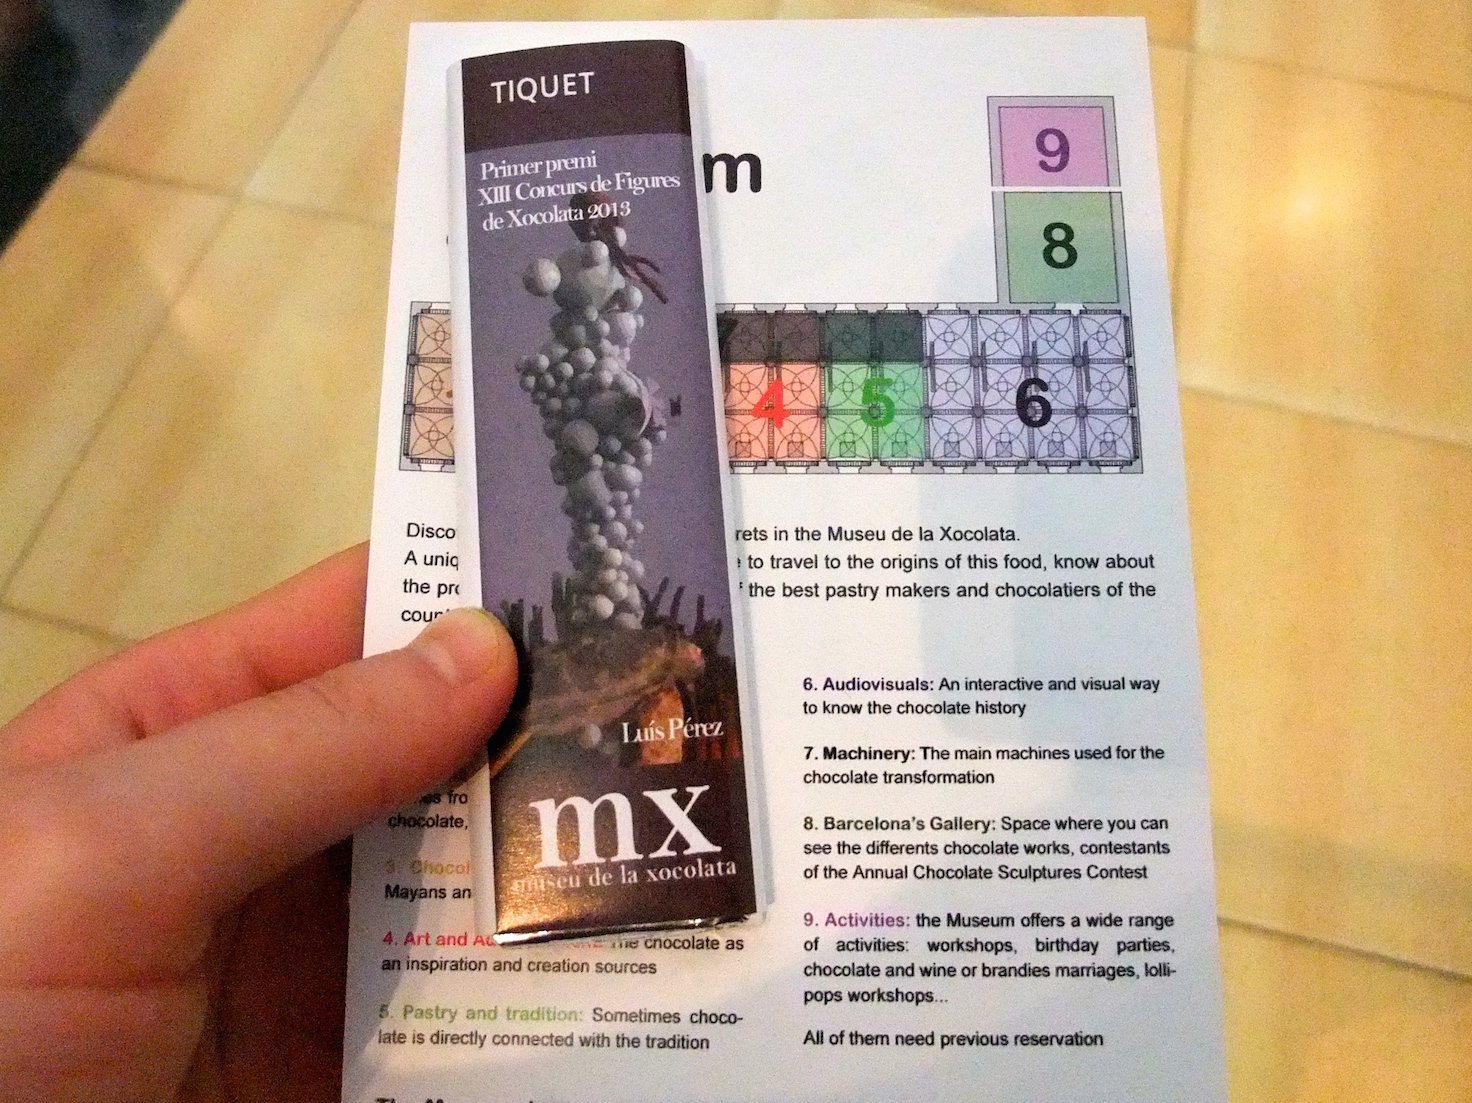 The museum ticket is actually a chocolate bar!